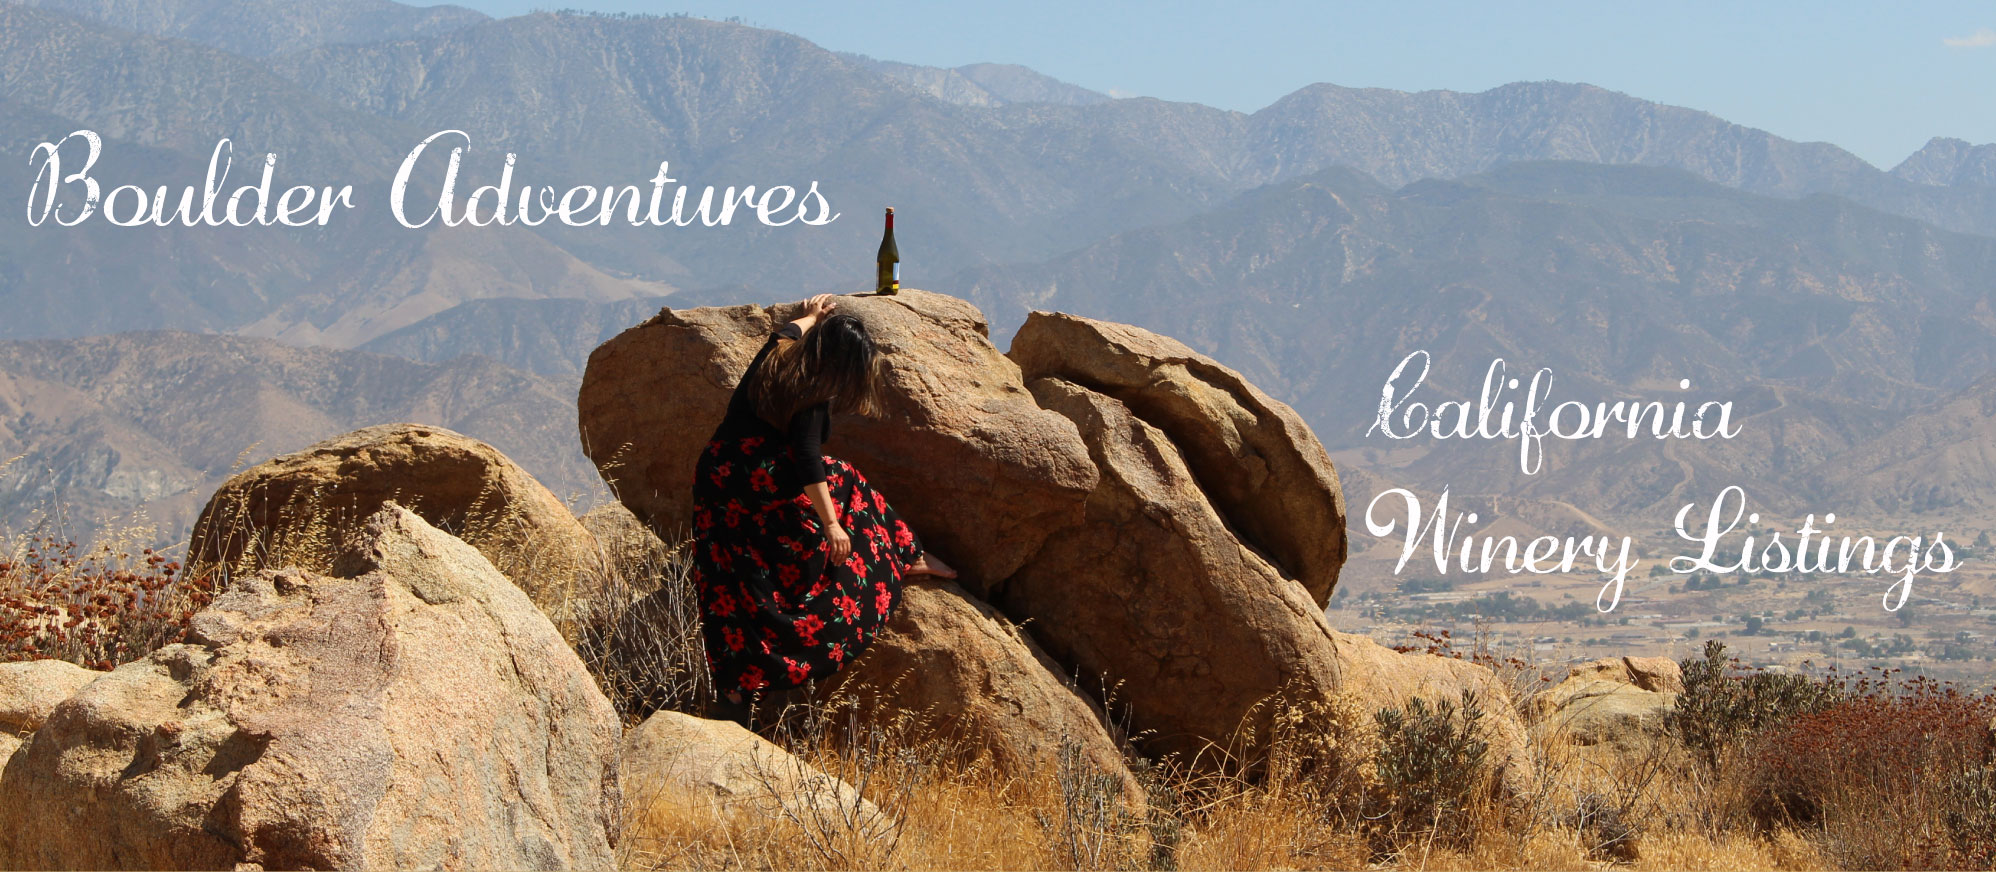 Boulder Adventures - California Winery Listings